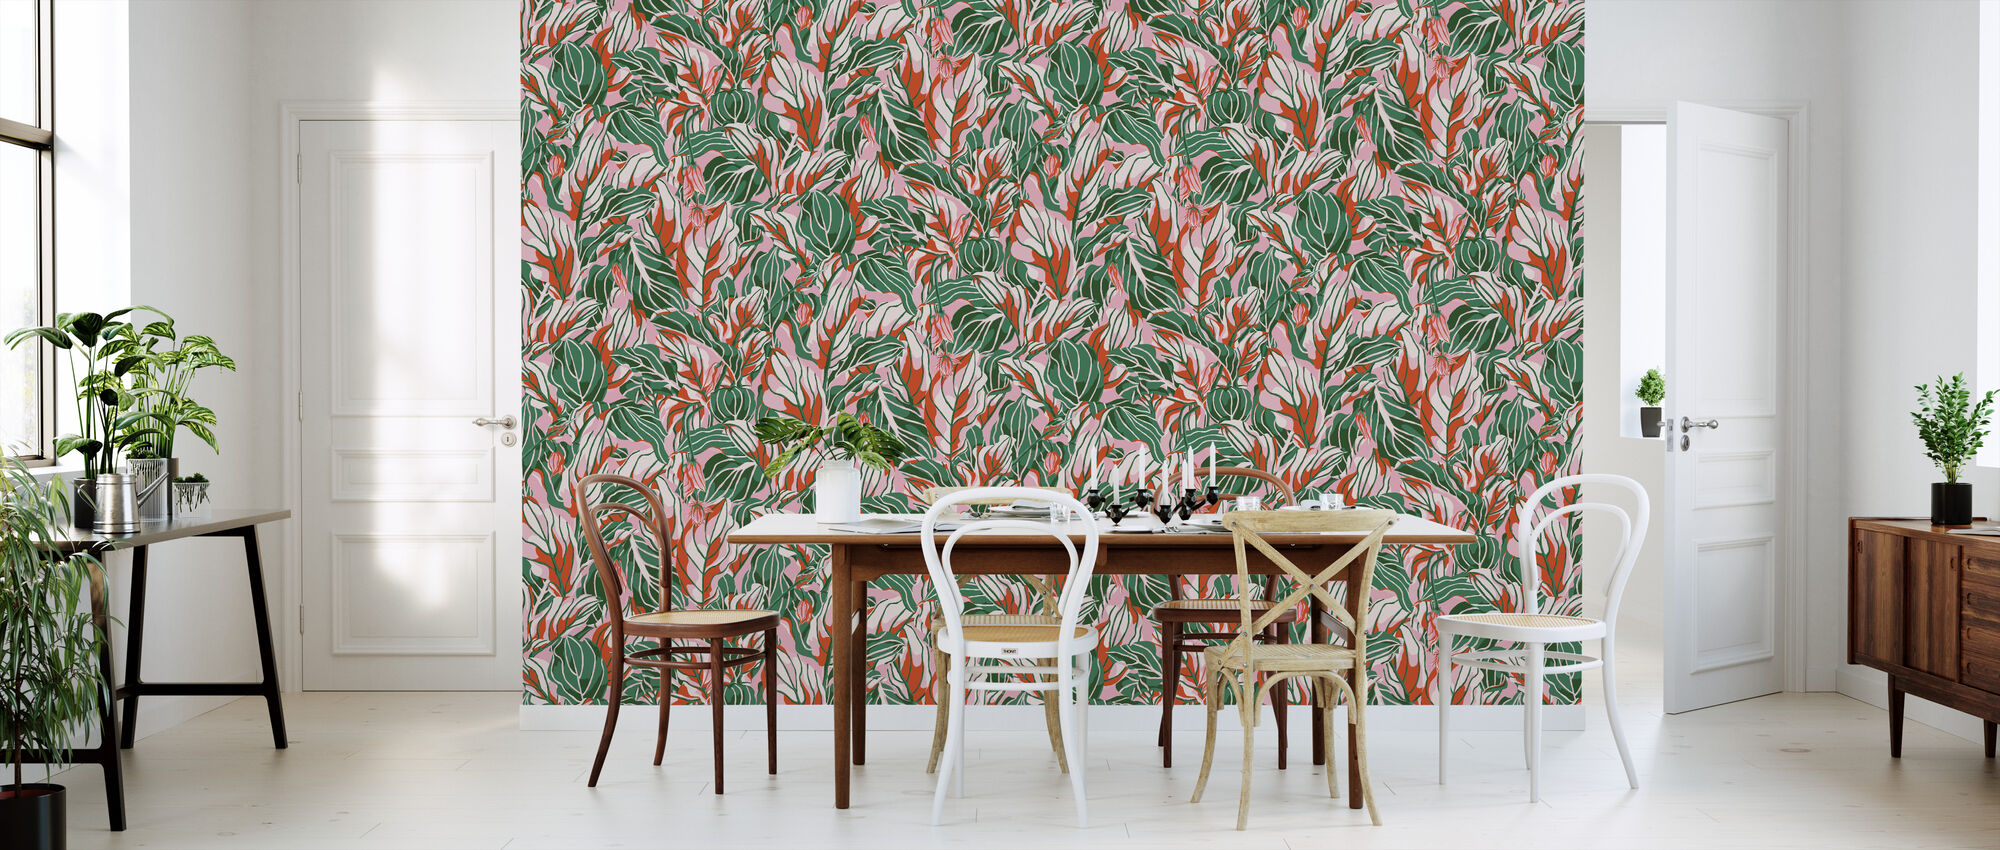 Stunner Peachy - Wallpaper - Kitchen